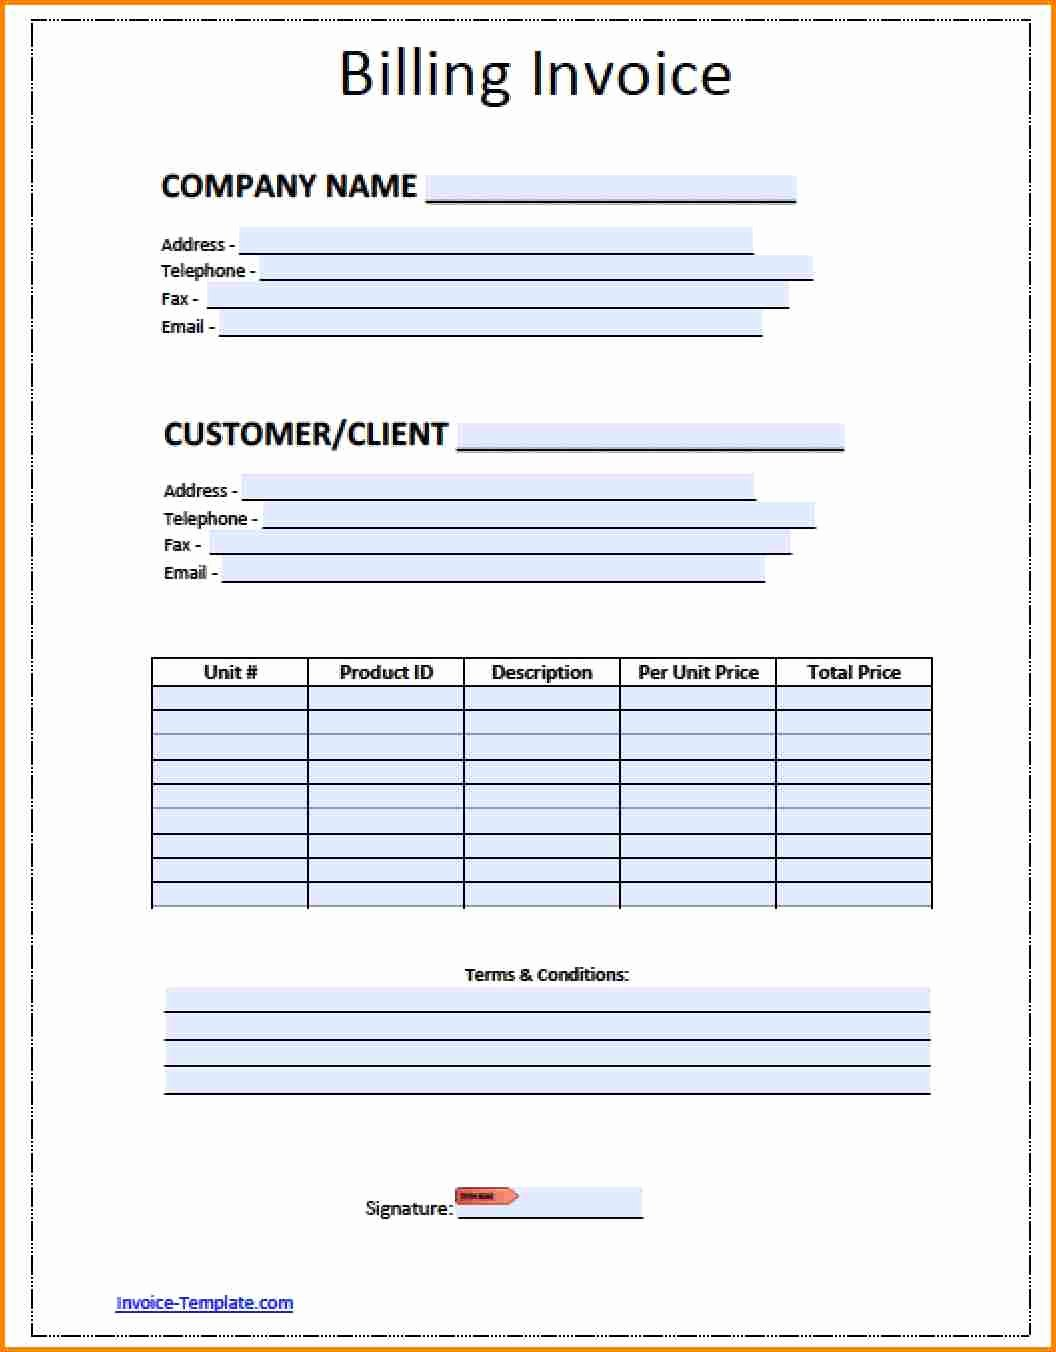 Billing Invoice Template Free Fresh Billing Sheet Template Invoice Design Inspiration